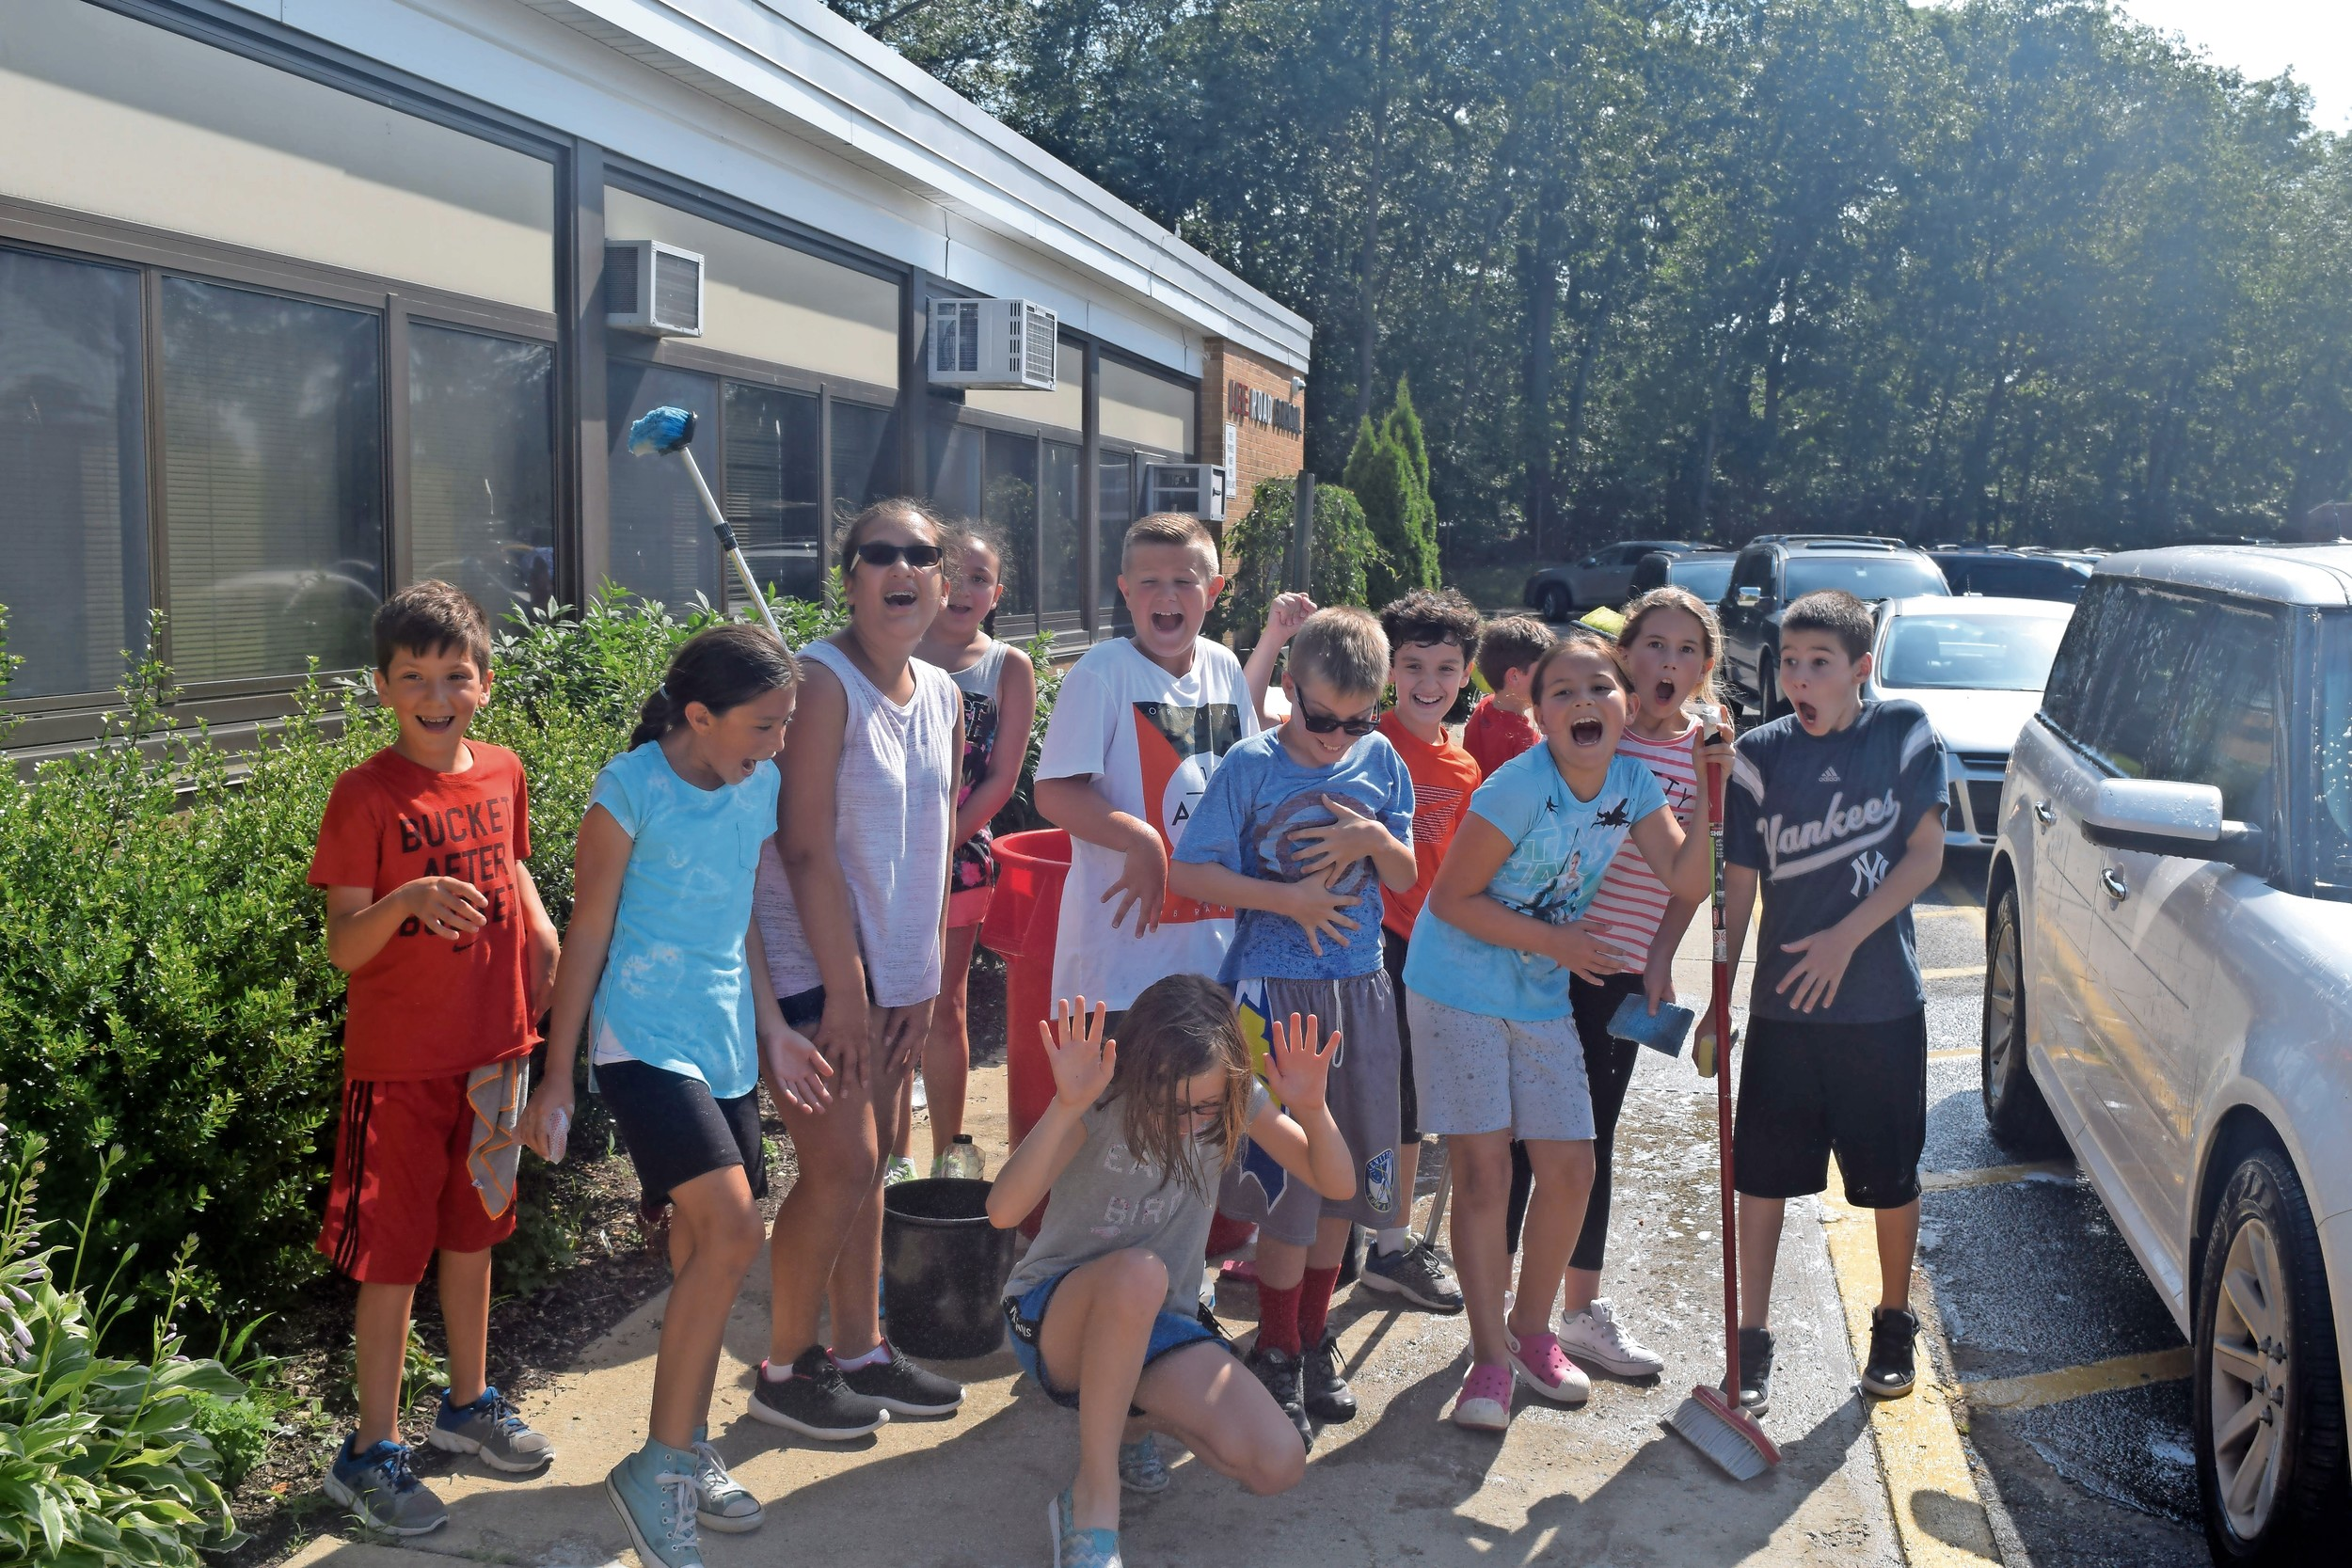 Lee Road Elementary students had fun spraying each other with water at the end-of-the-year car wash — a fundraiser for the school's character education program — on June 19.